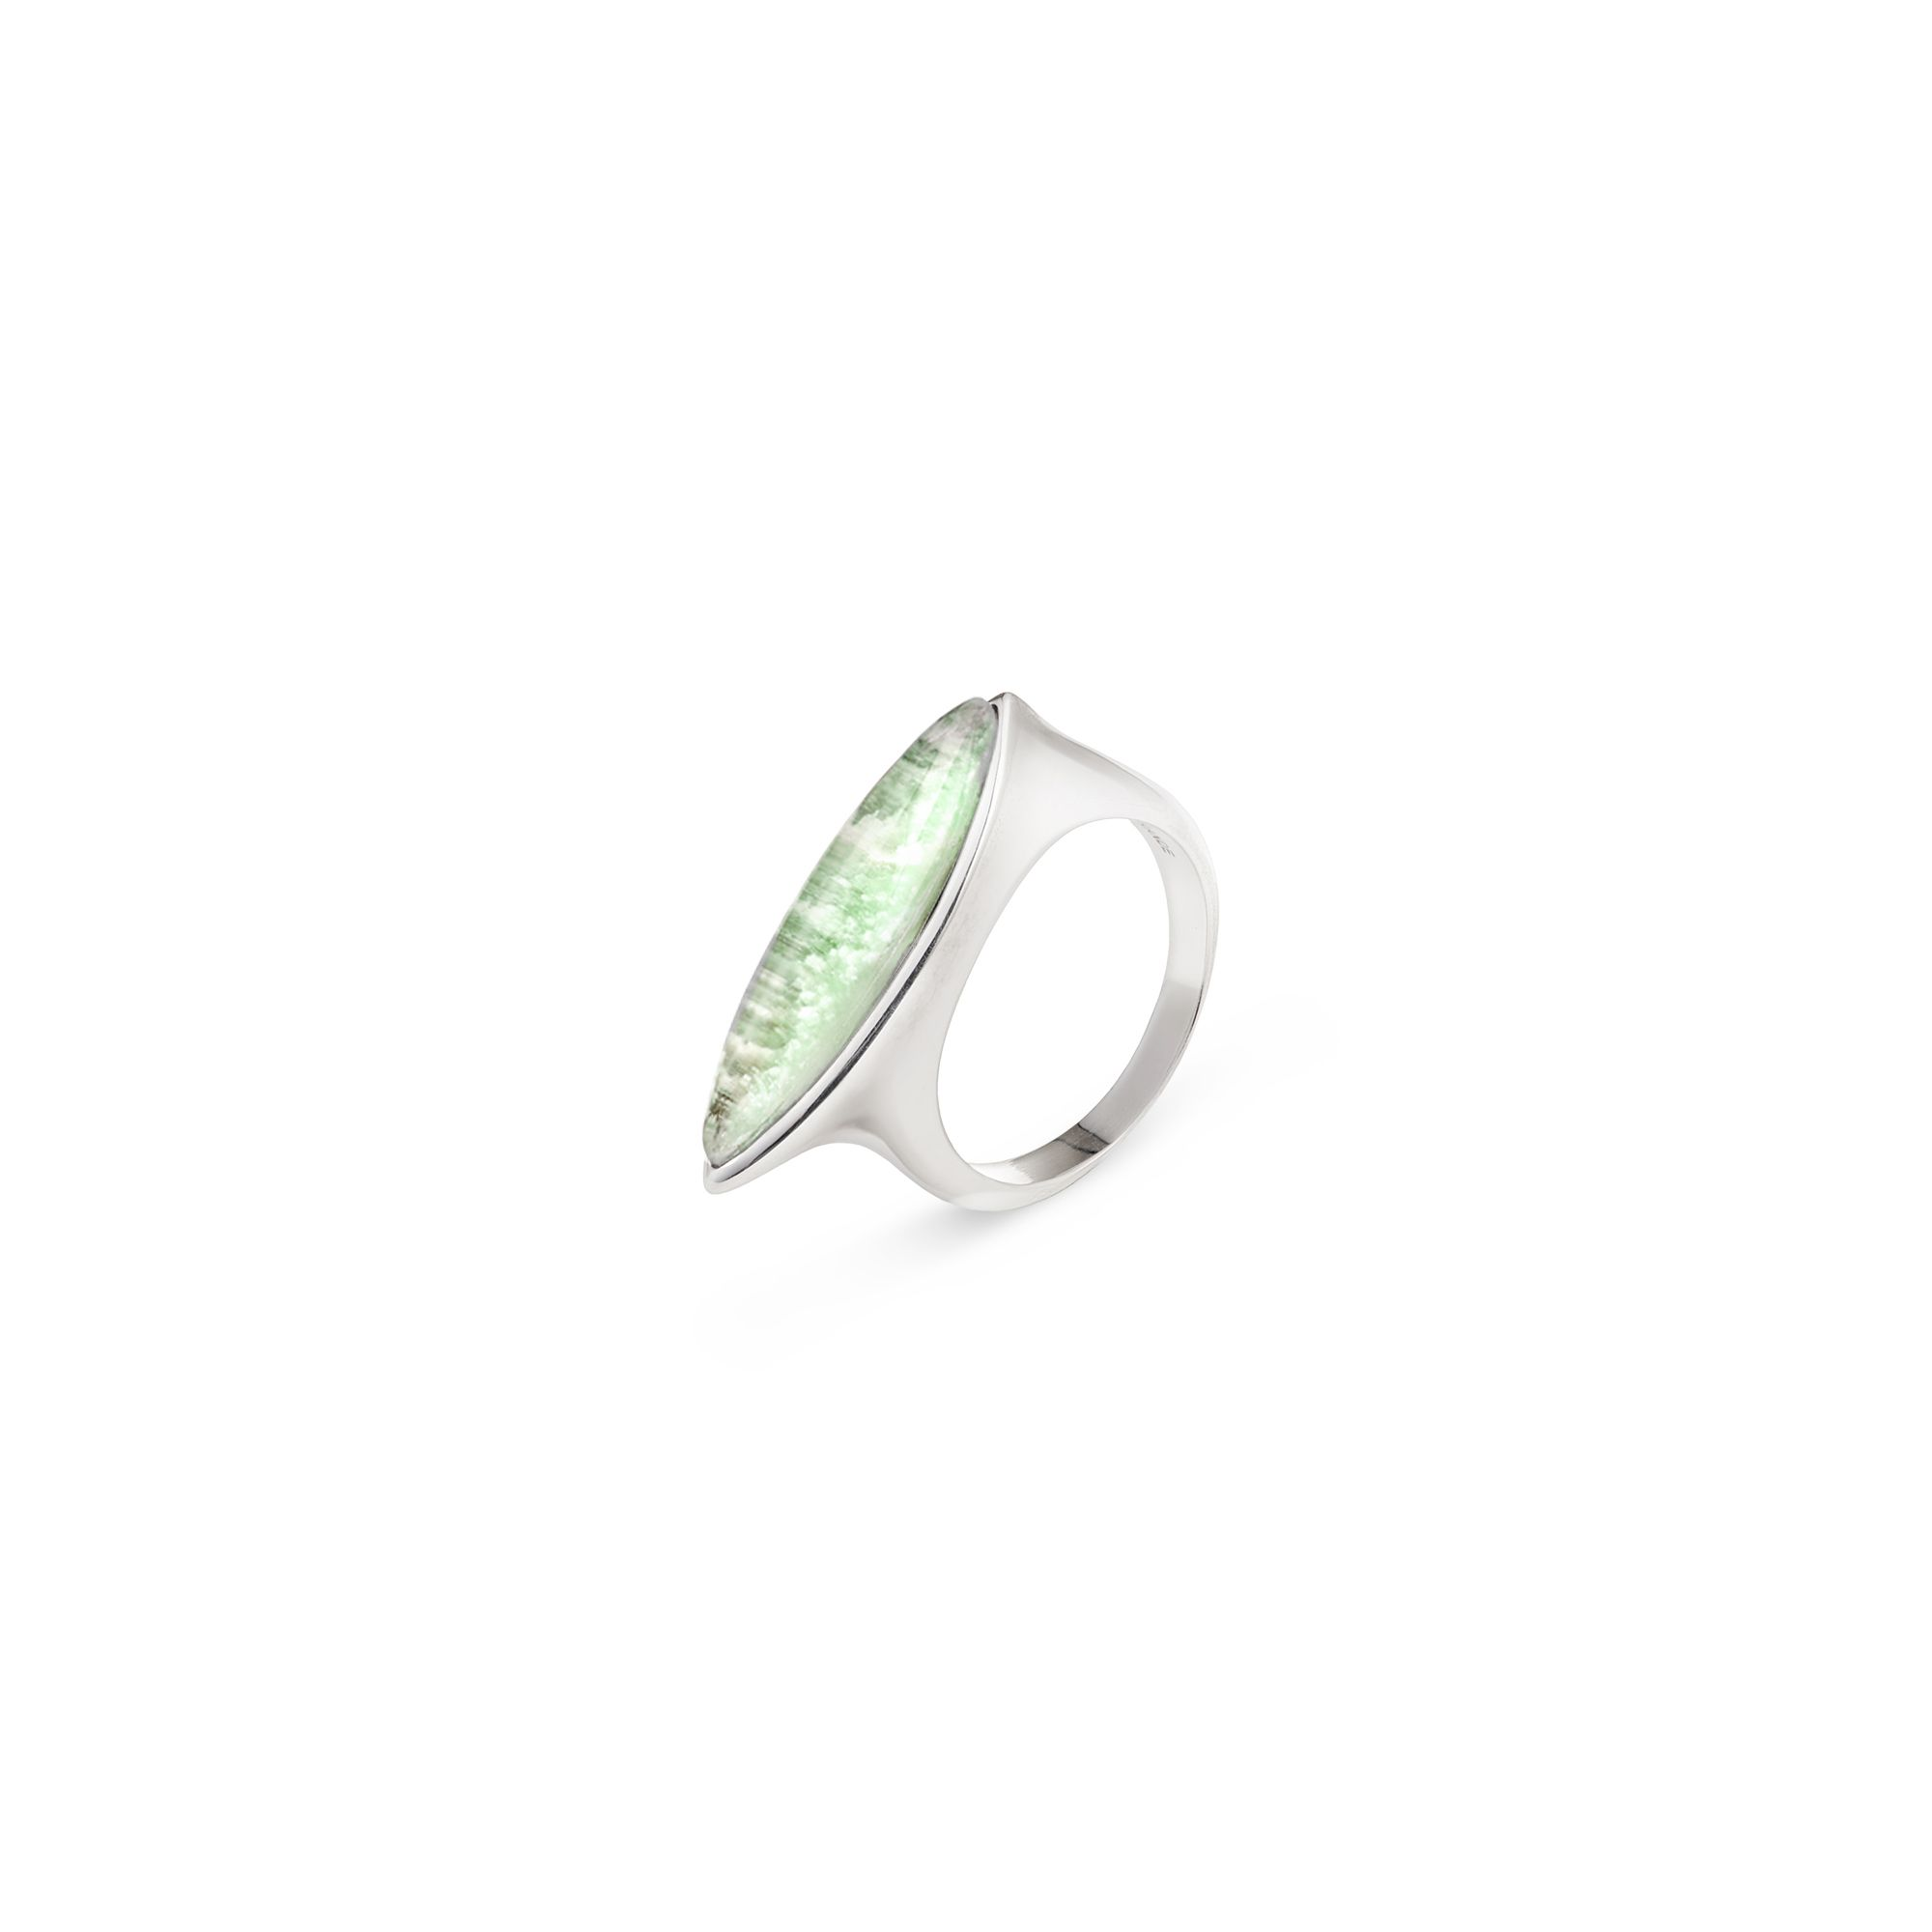 Green agate navetta ring Silver ring with stone